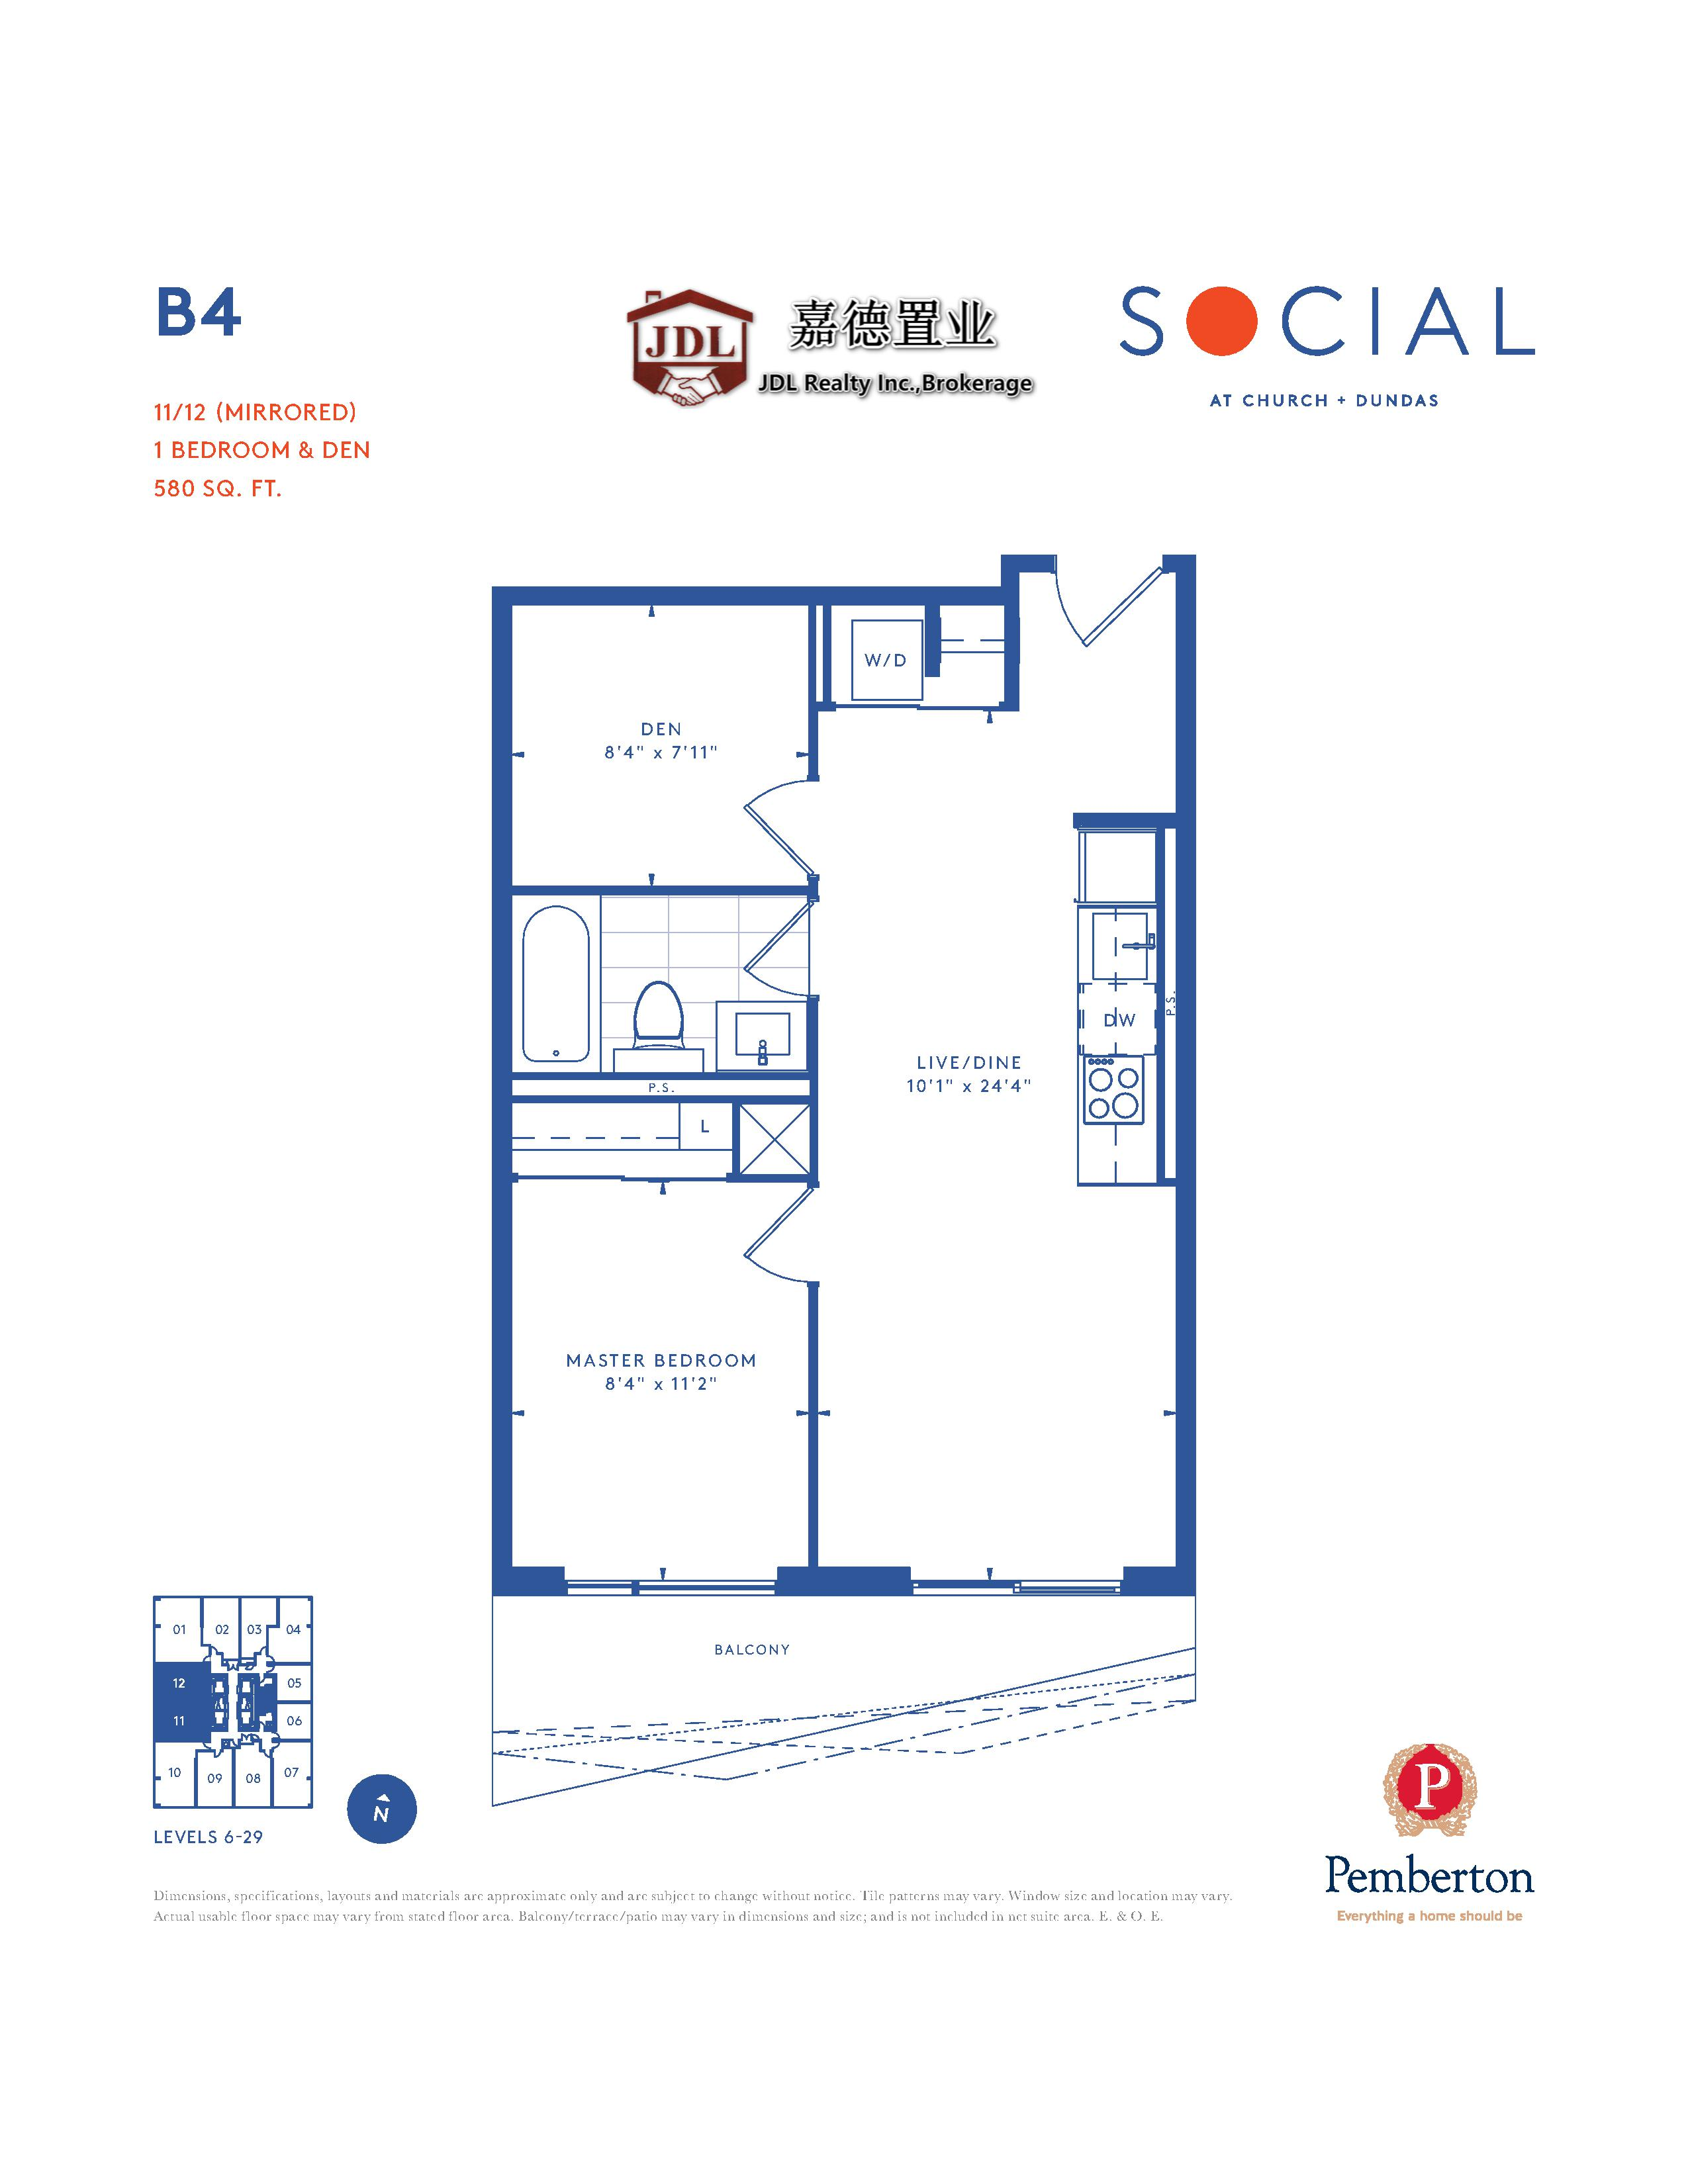 Social Tower floor plan 1 13